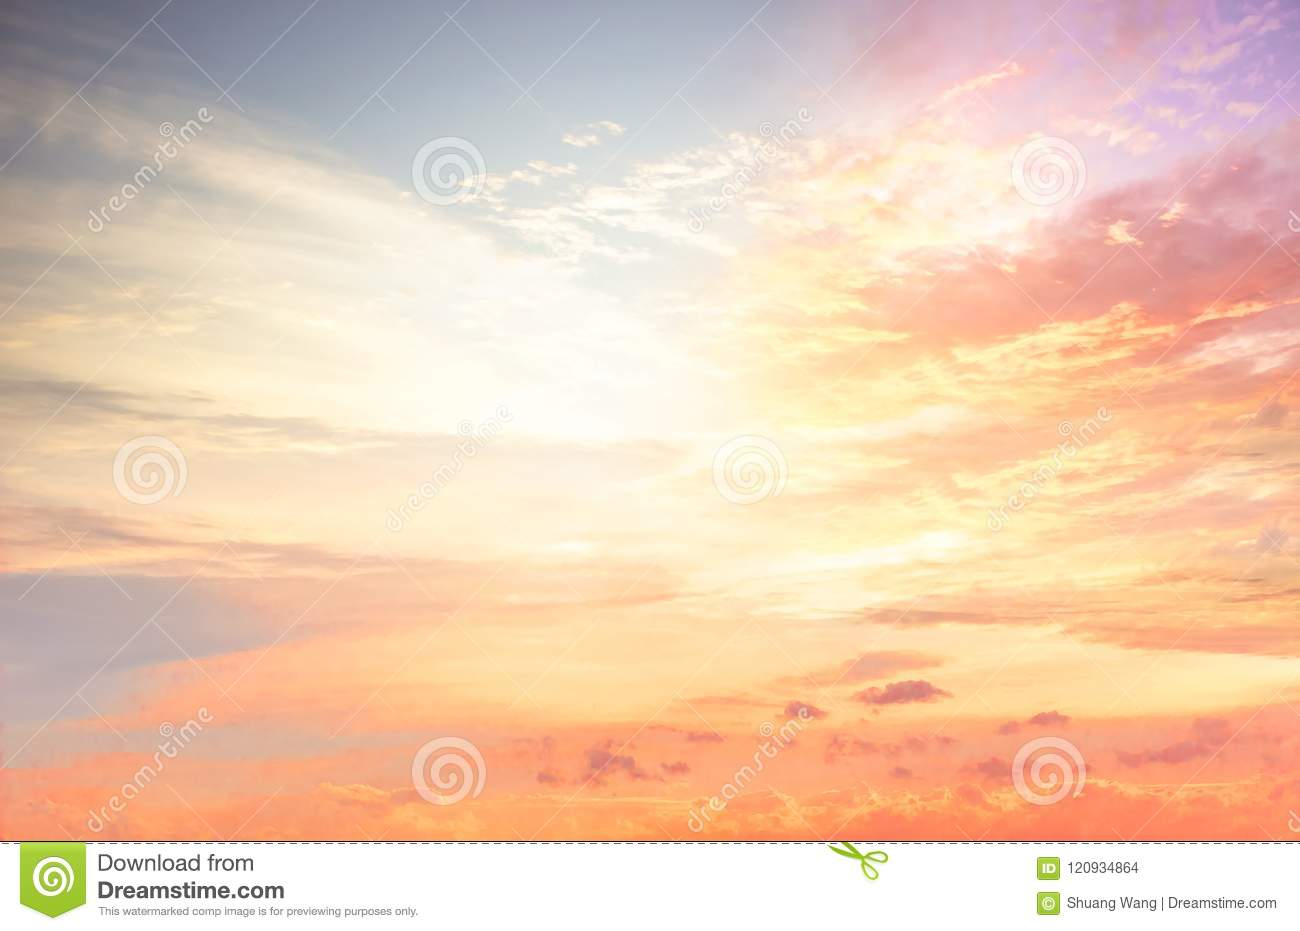 Background Of Colorful Sky Concept Dramatic Sunset With Twilight